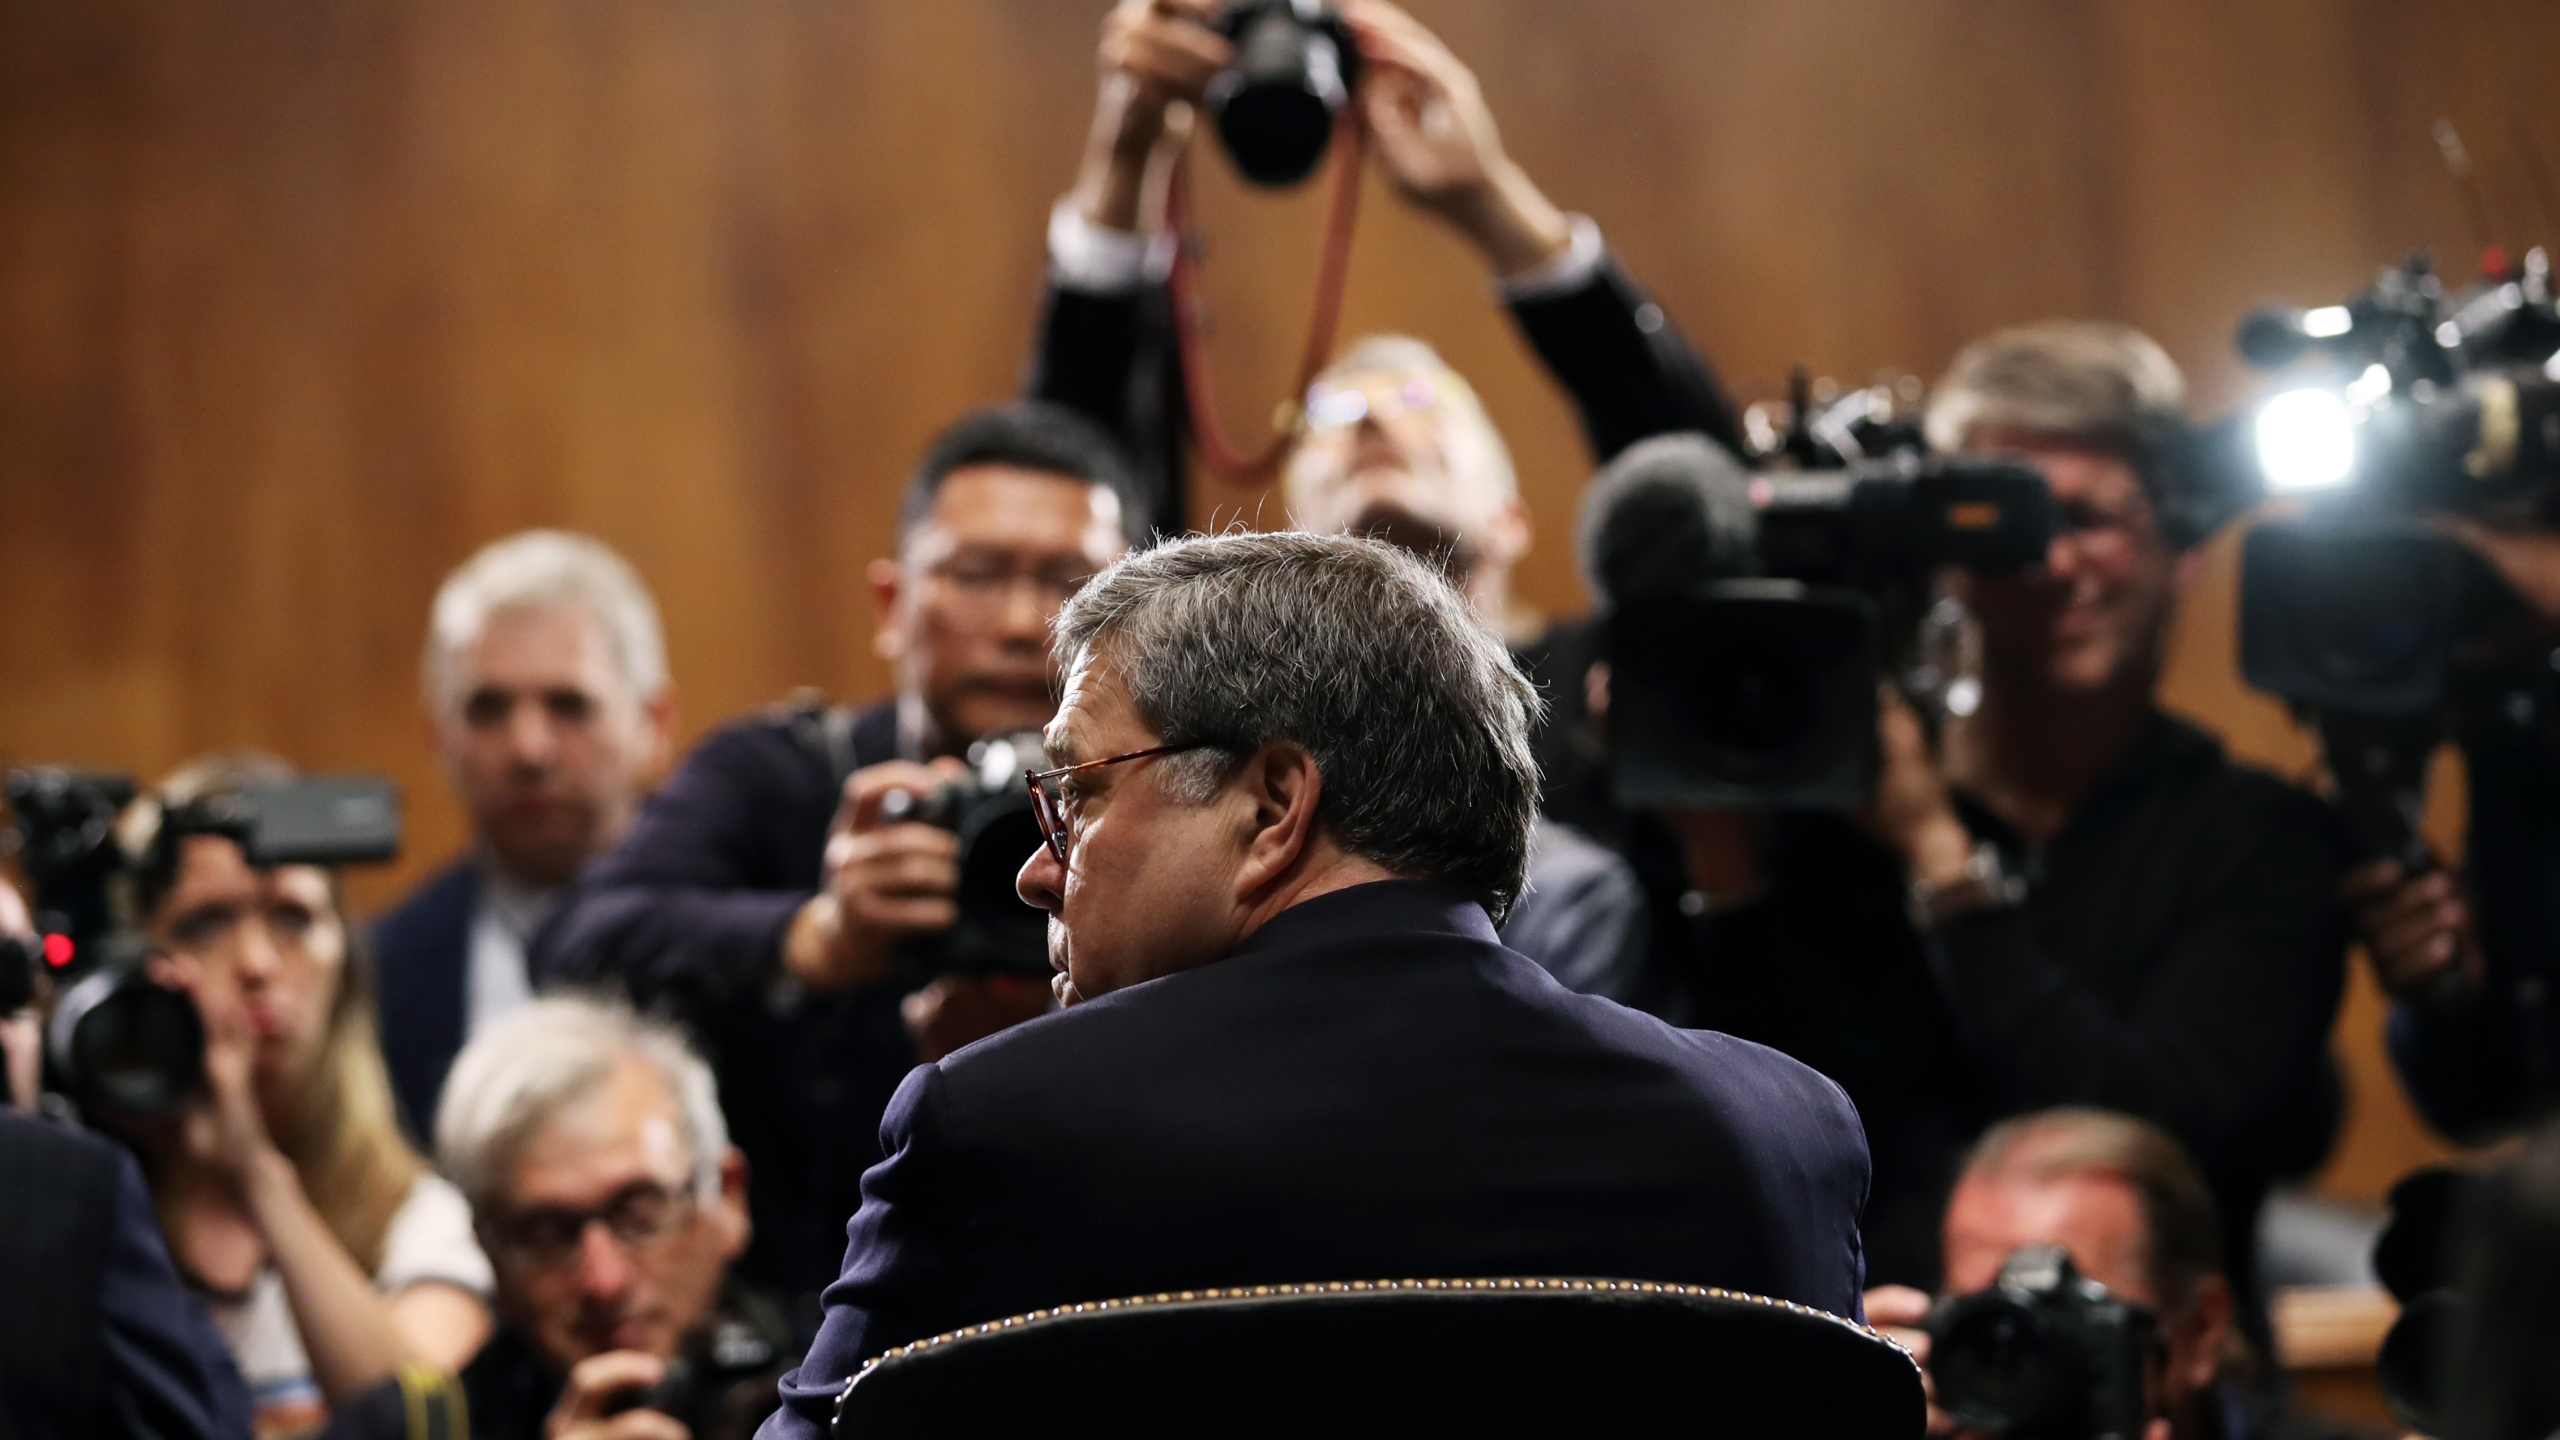 Attorney General William Barr arrives to testify before the Senate Judiciary Committee on May 1, 2019. (Credit: Win McNamee / Getty Images)